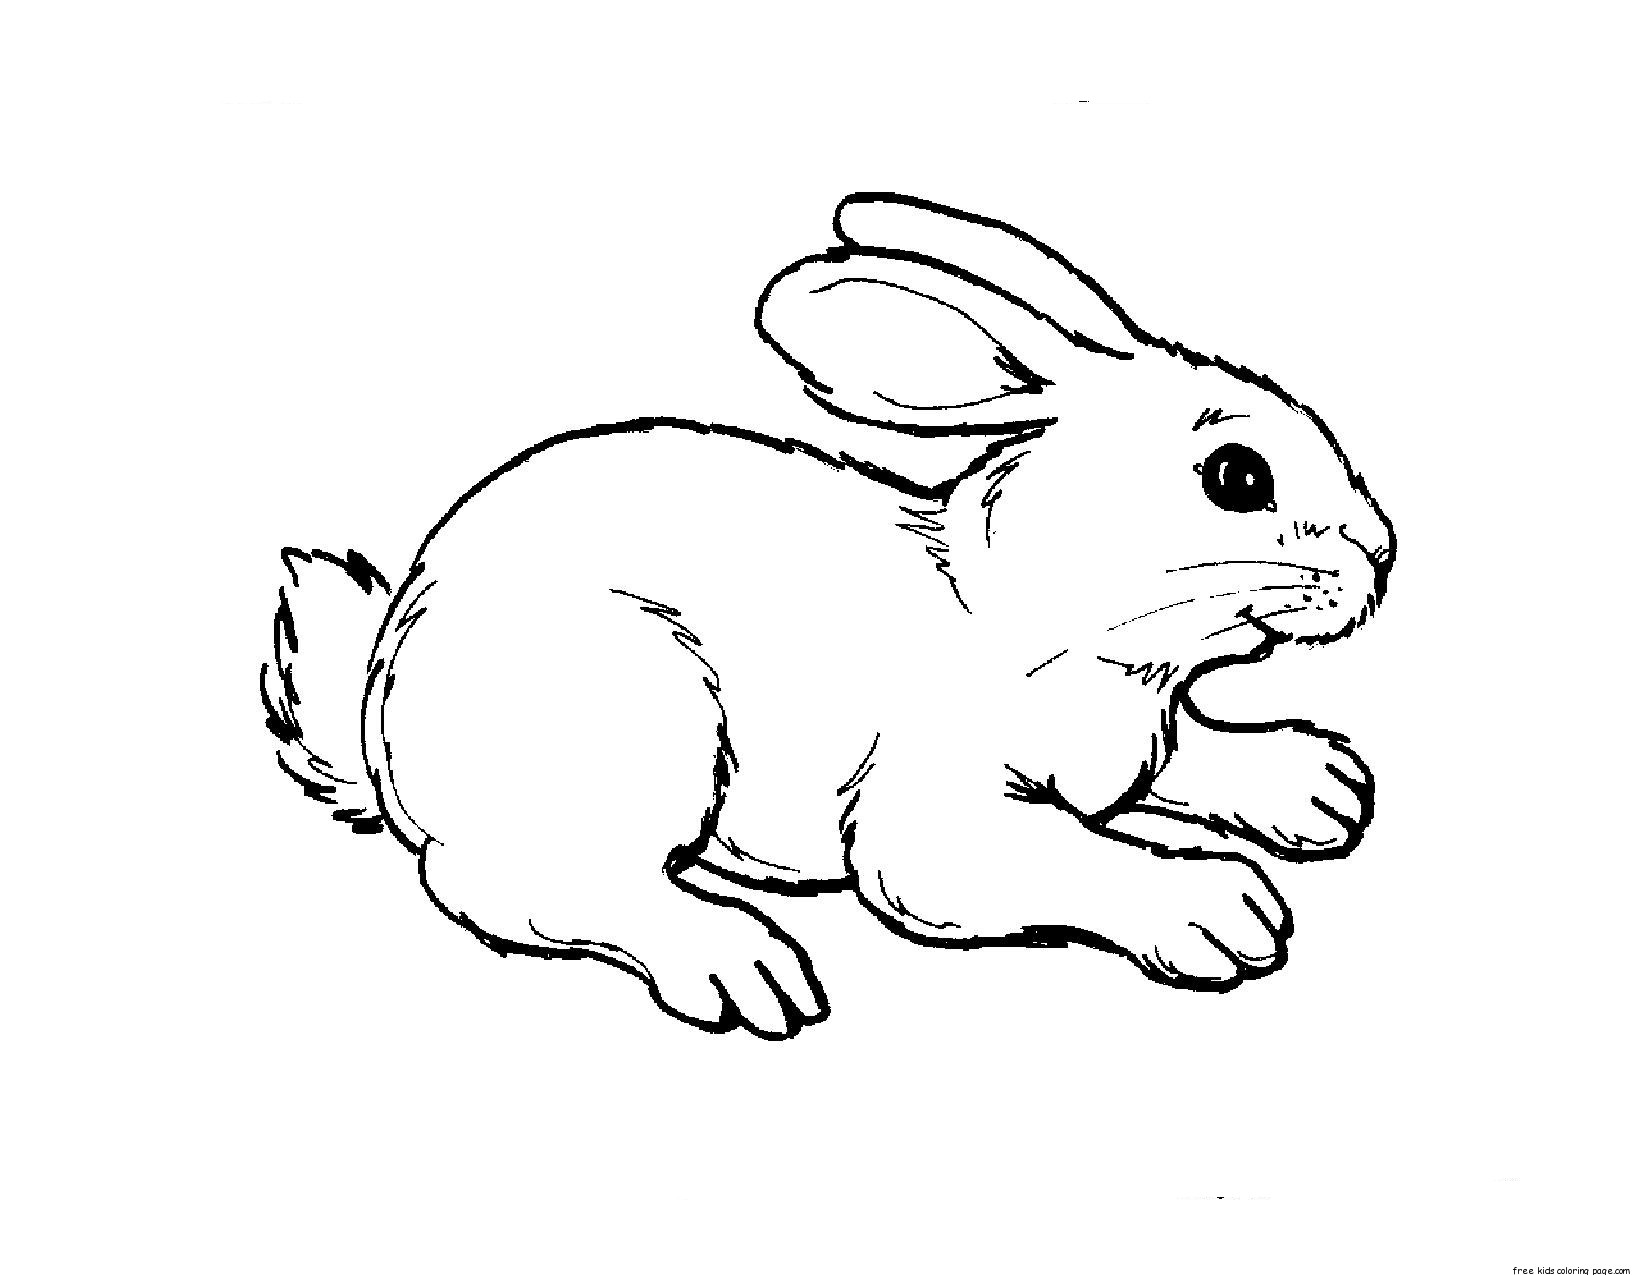 free pictures of farm animals to print cute baby farm animal coloring pages best coloring pages to pictures animals of free farm print